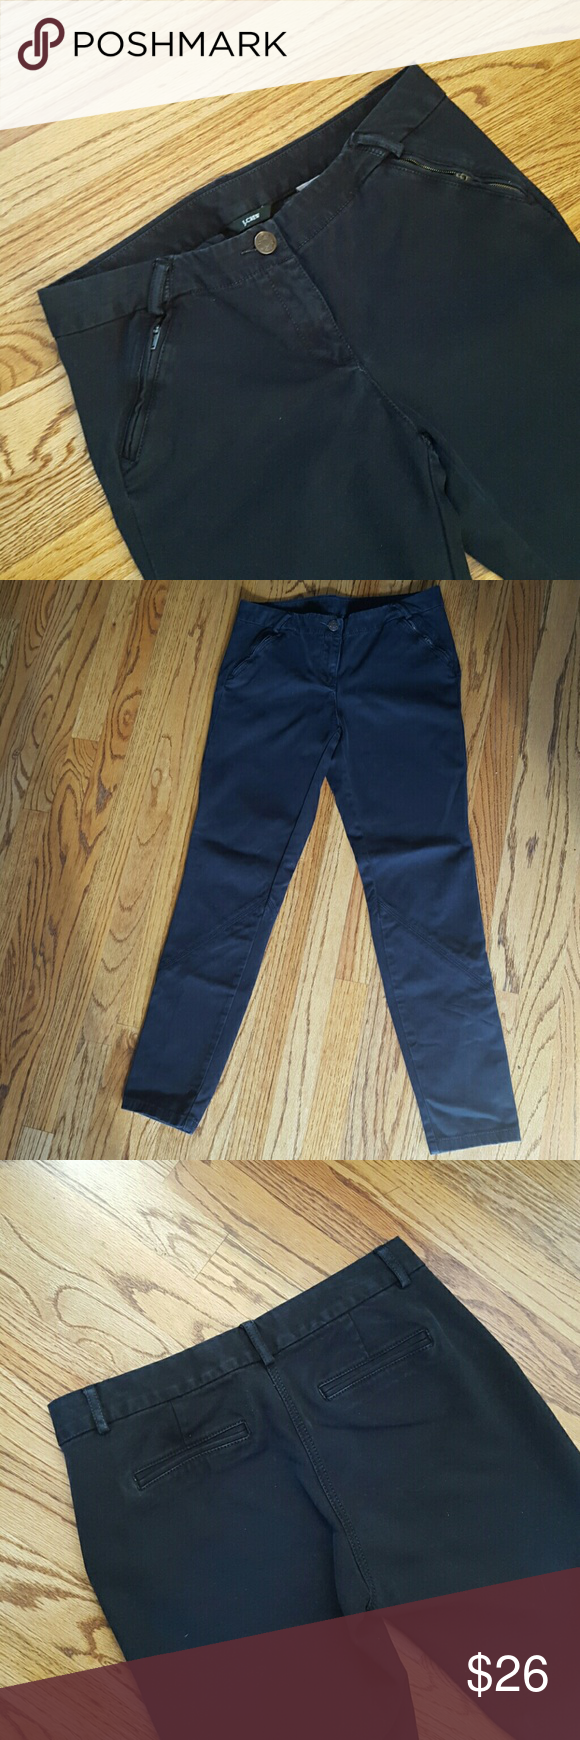 "J Crew skinny pants with zipper Good condition.  Black skinny pants with zipper pockets and cute diagonal stitch detail on front and back calf. Inseam 28"" Rise 8.5"" Fabric 98% cotton, 2% spandex J. Crew Pants Skinny"